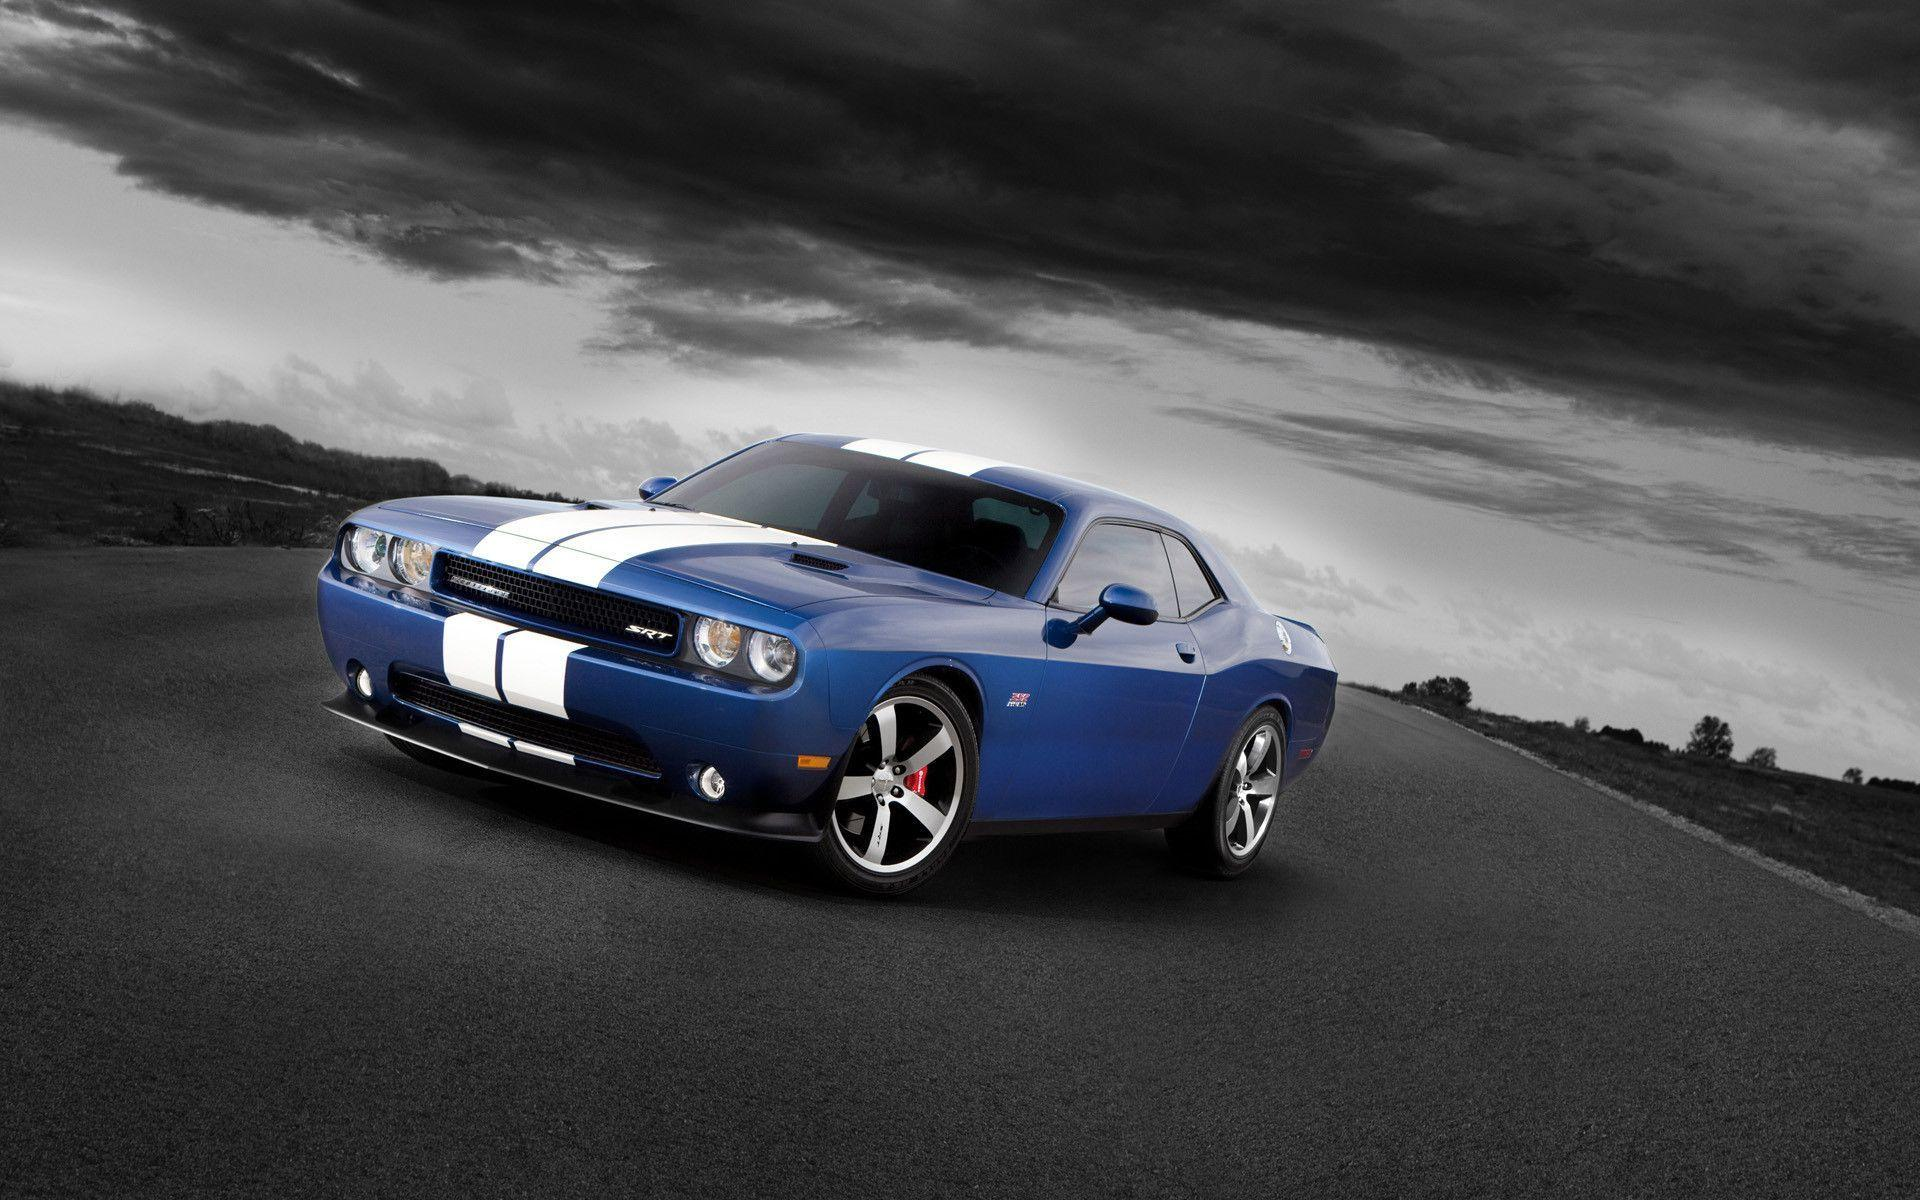 dodge challenger wallpapers wallpaper cave. Cars Review. Best American Auto & Cars Review